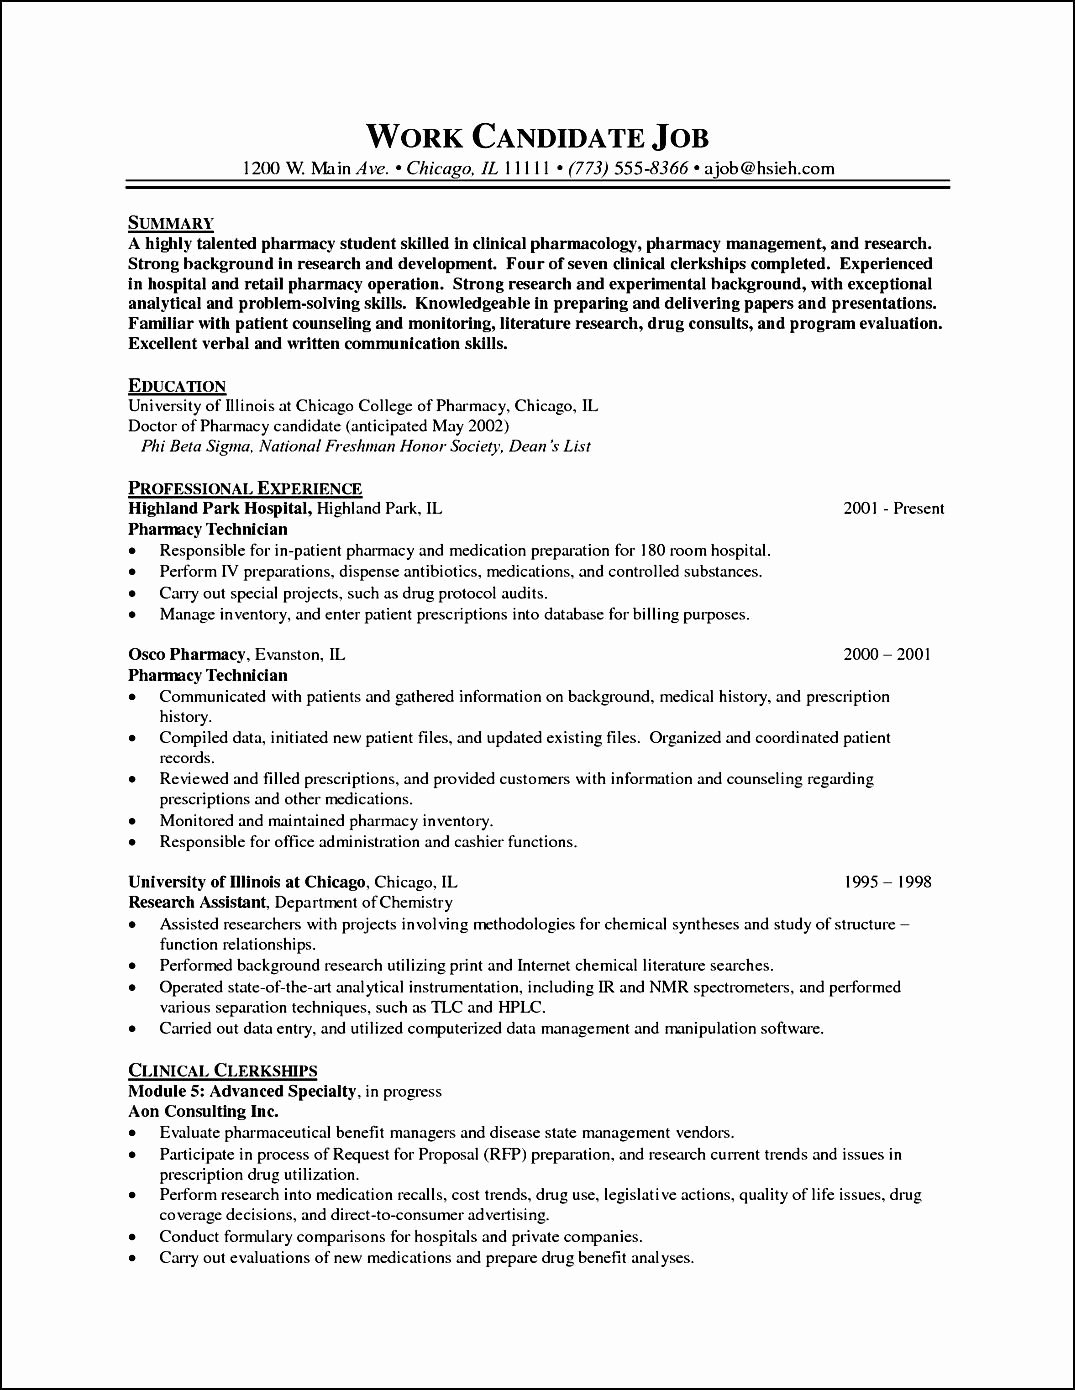 Pharmacist Curriculum Vitae Template Best Of Pharmacy Curriculum Vitae Example Free Samples